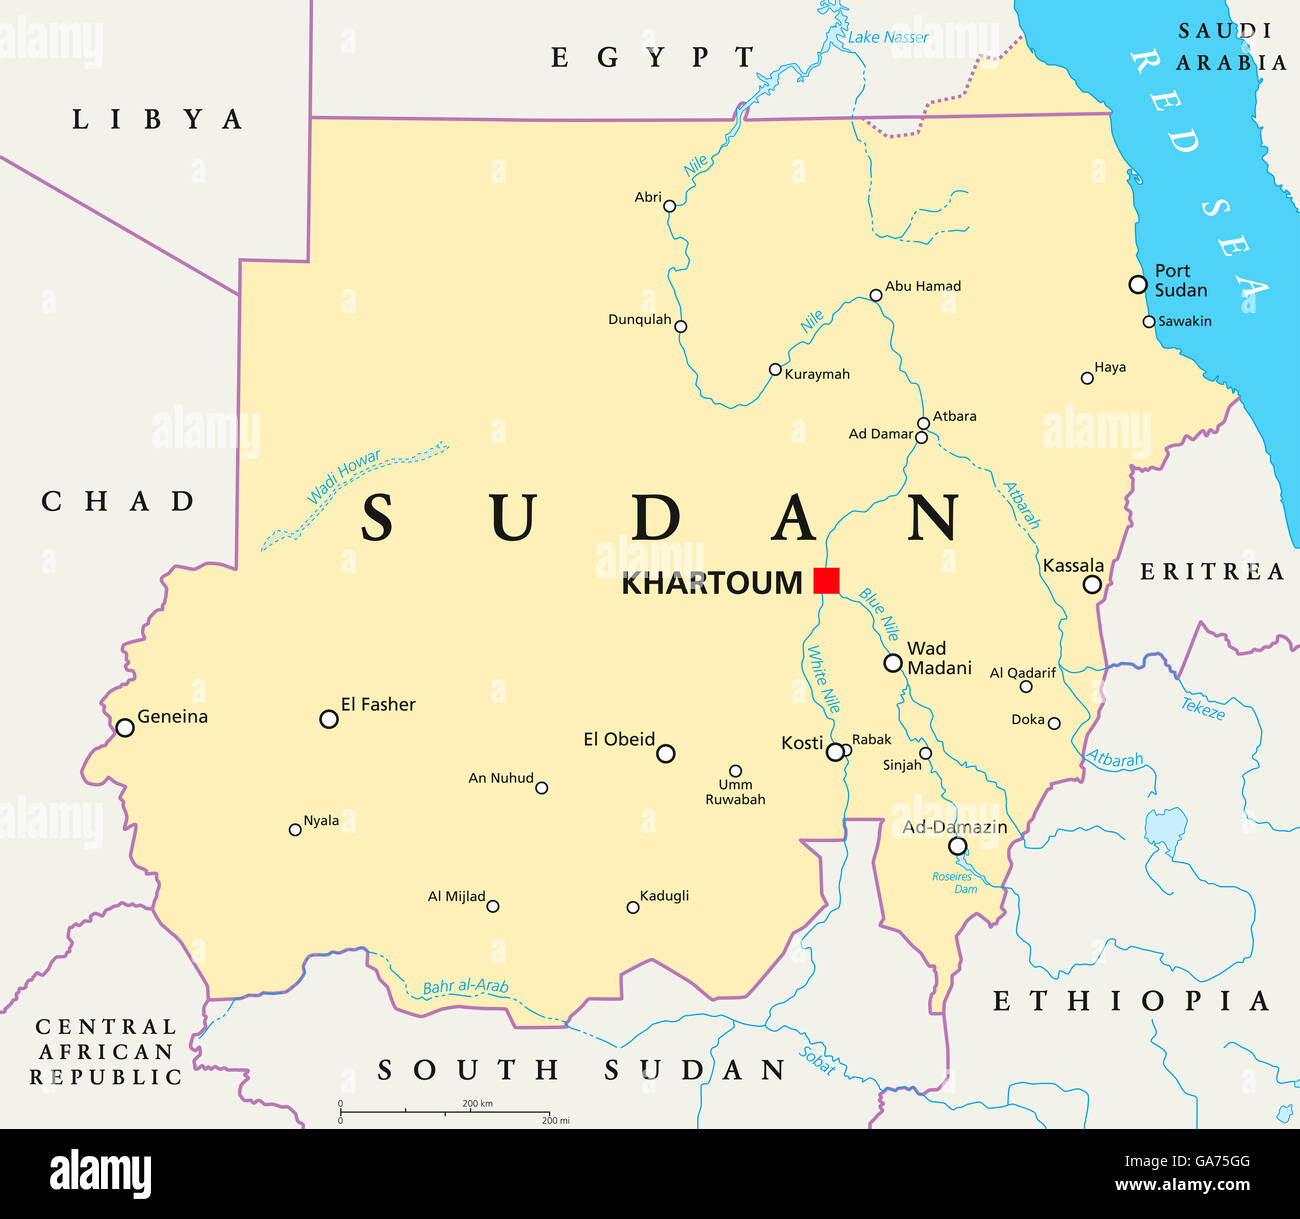 physical map of chad with Stock Photo Sudan Political Map With Capital Khartoum National Borders Important 109566816 on 3688 in addition Kenya Maps together with Chad also Stock Photo Sudan Political Map With Capital Khartoum National Borders Important 109566816 additionally 2003 Legislative Election Belgium.